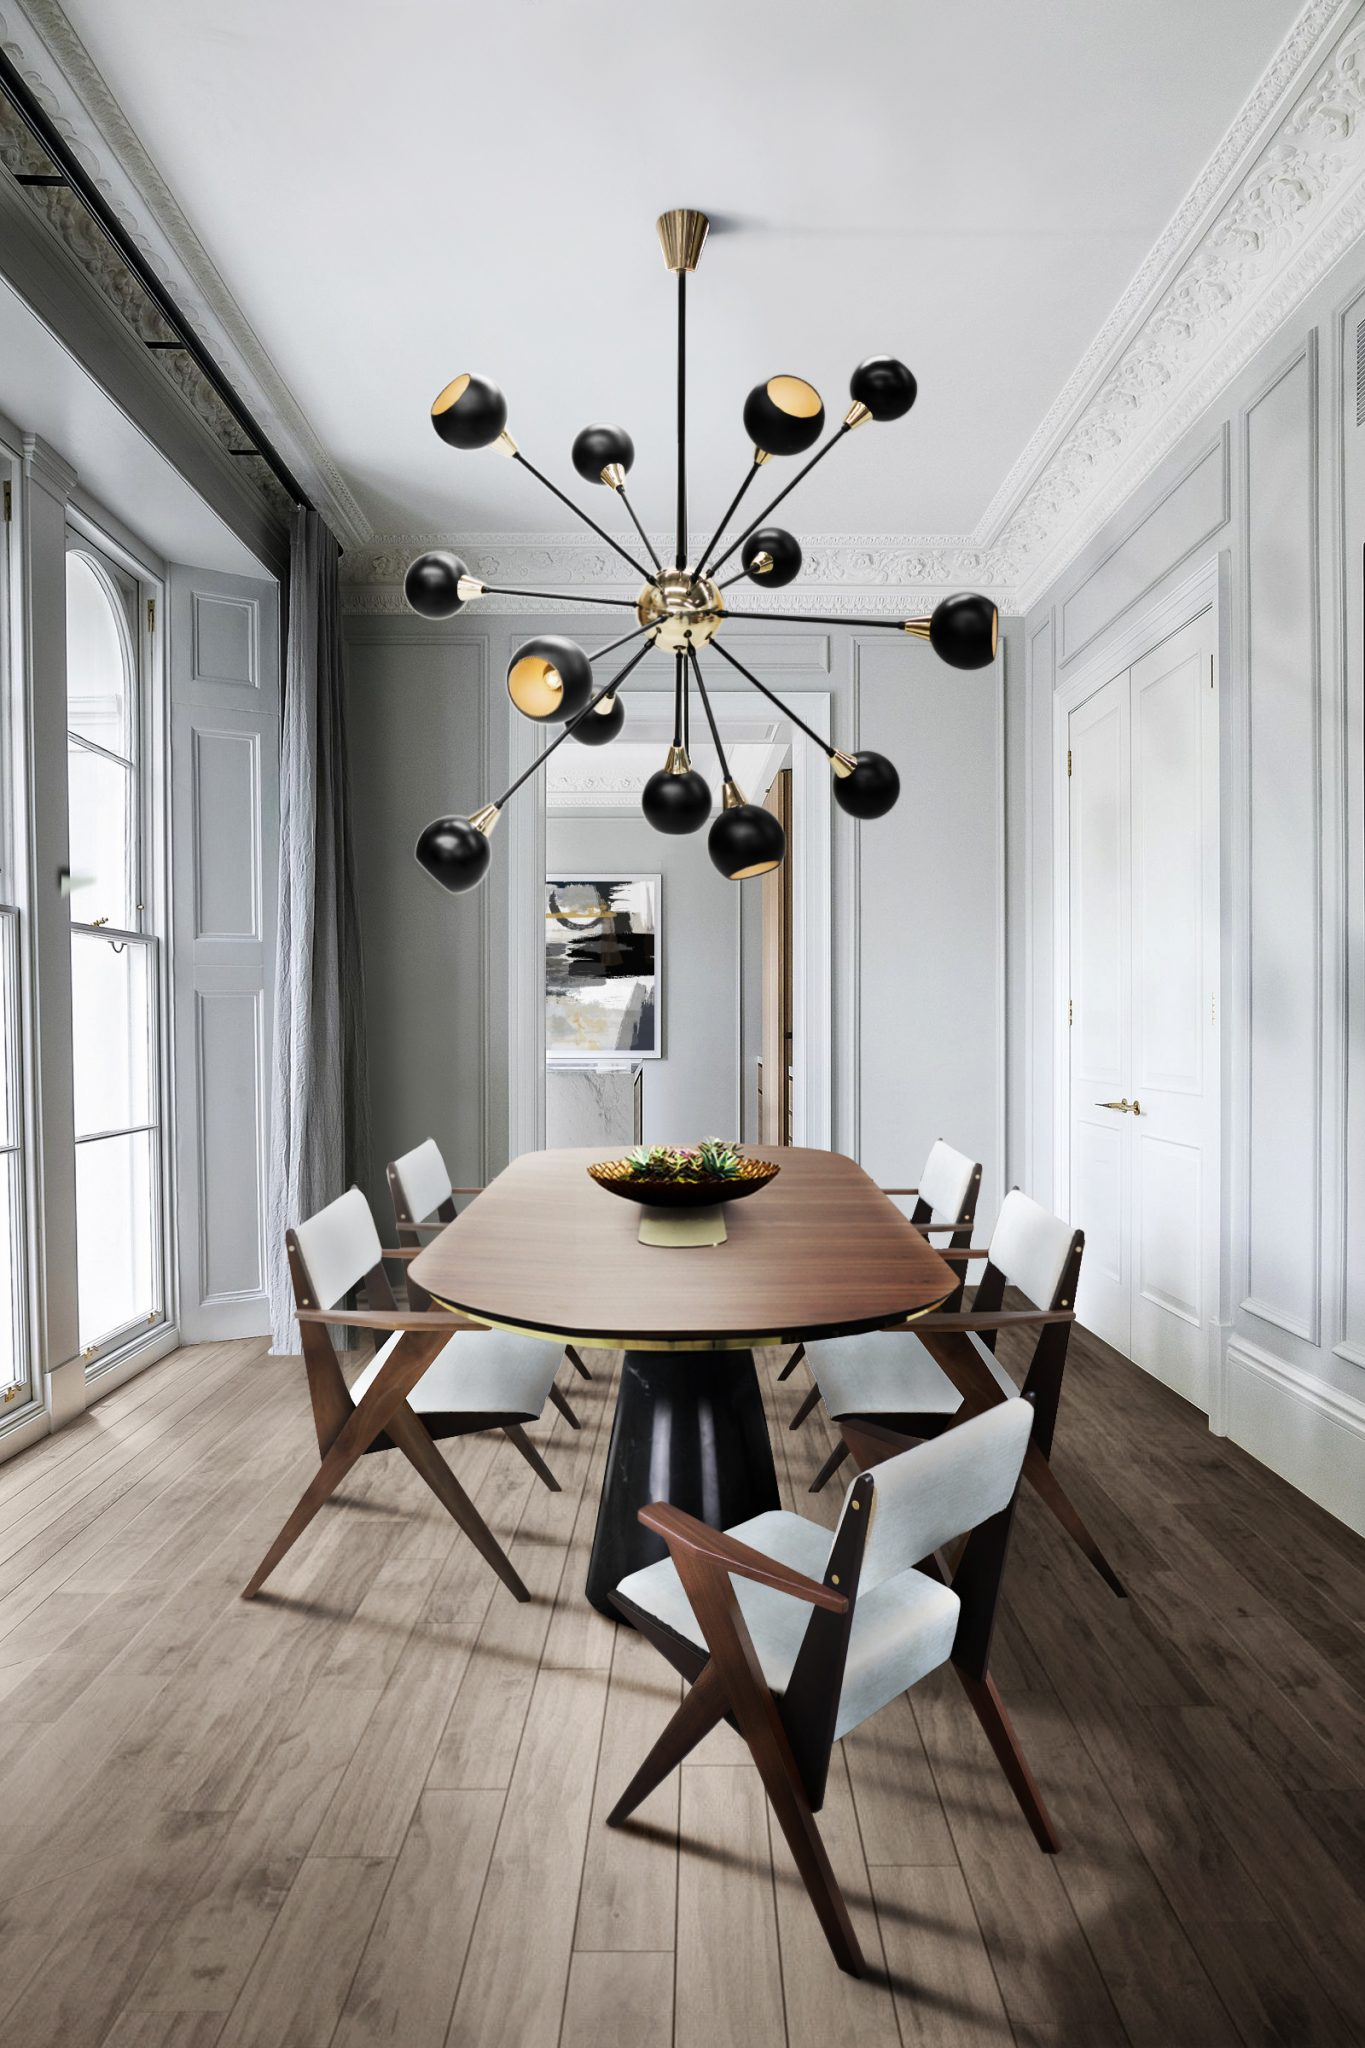 DINING ROOM WITH BLAKEY CEILING SUSPENSION